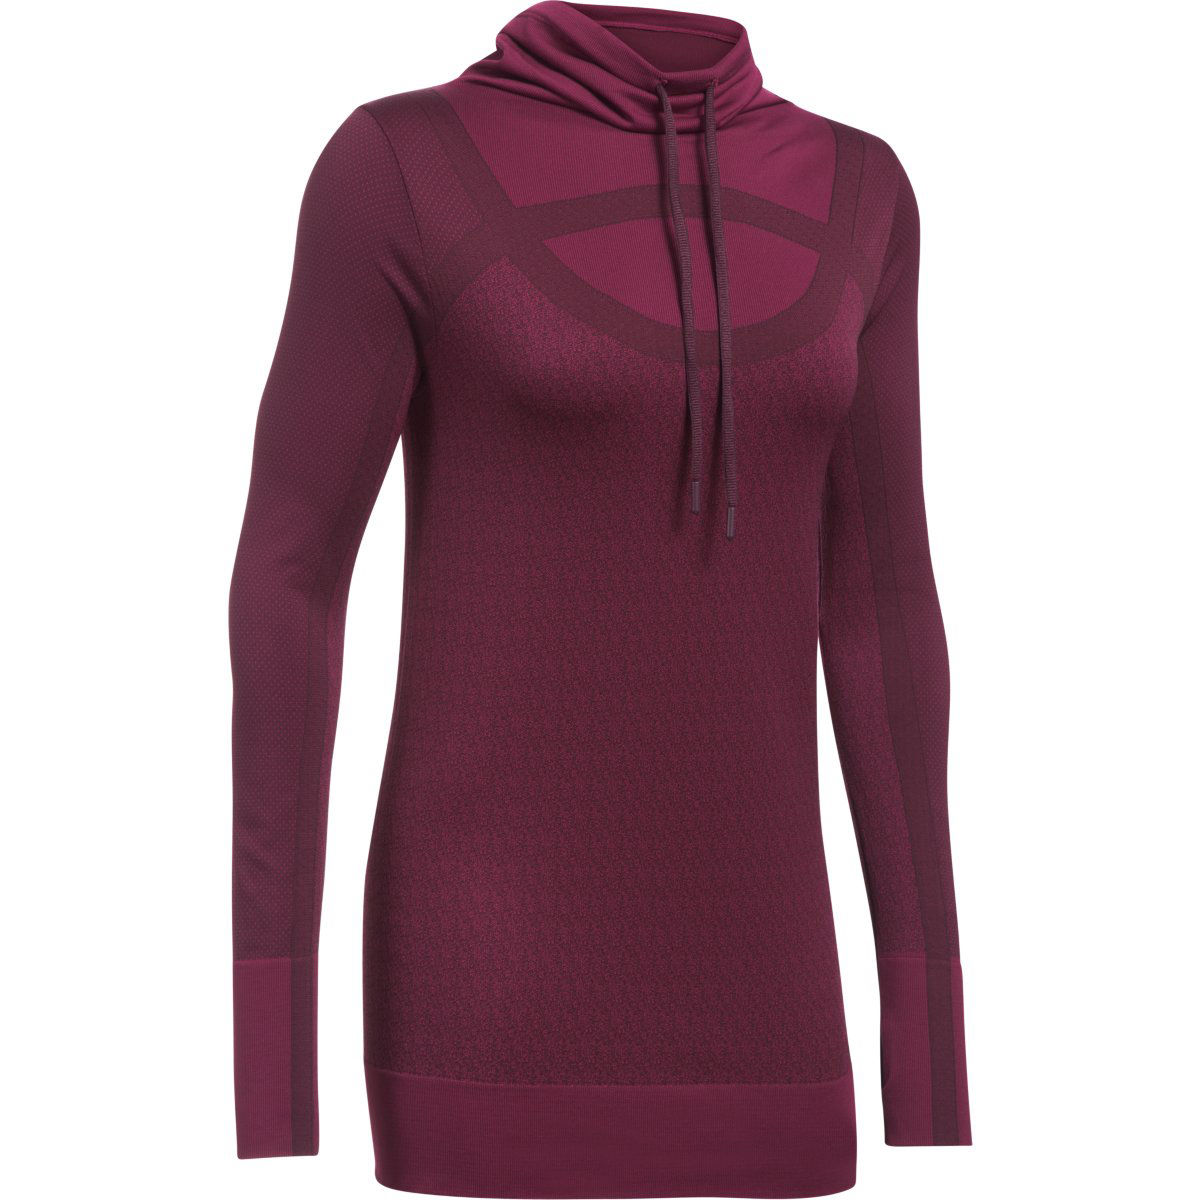 Camiseta de fitness Under Armour Threadborne Seamless para mujer (cuello chimenea) - Camisetas de entrenamiento